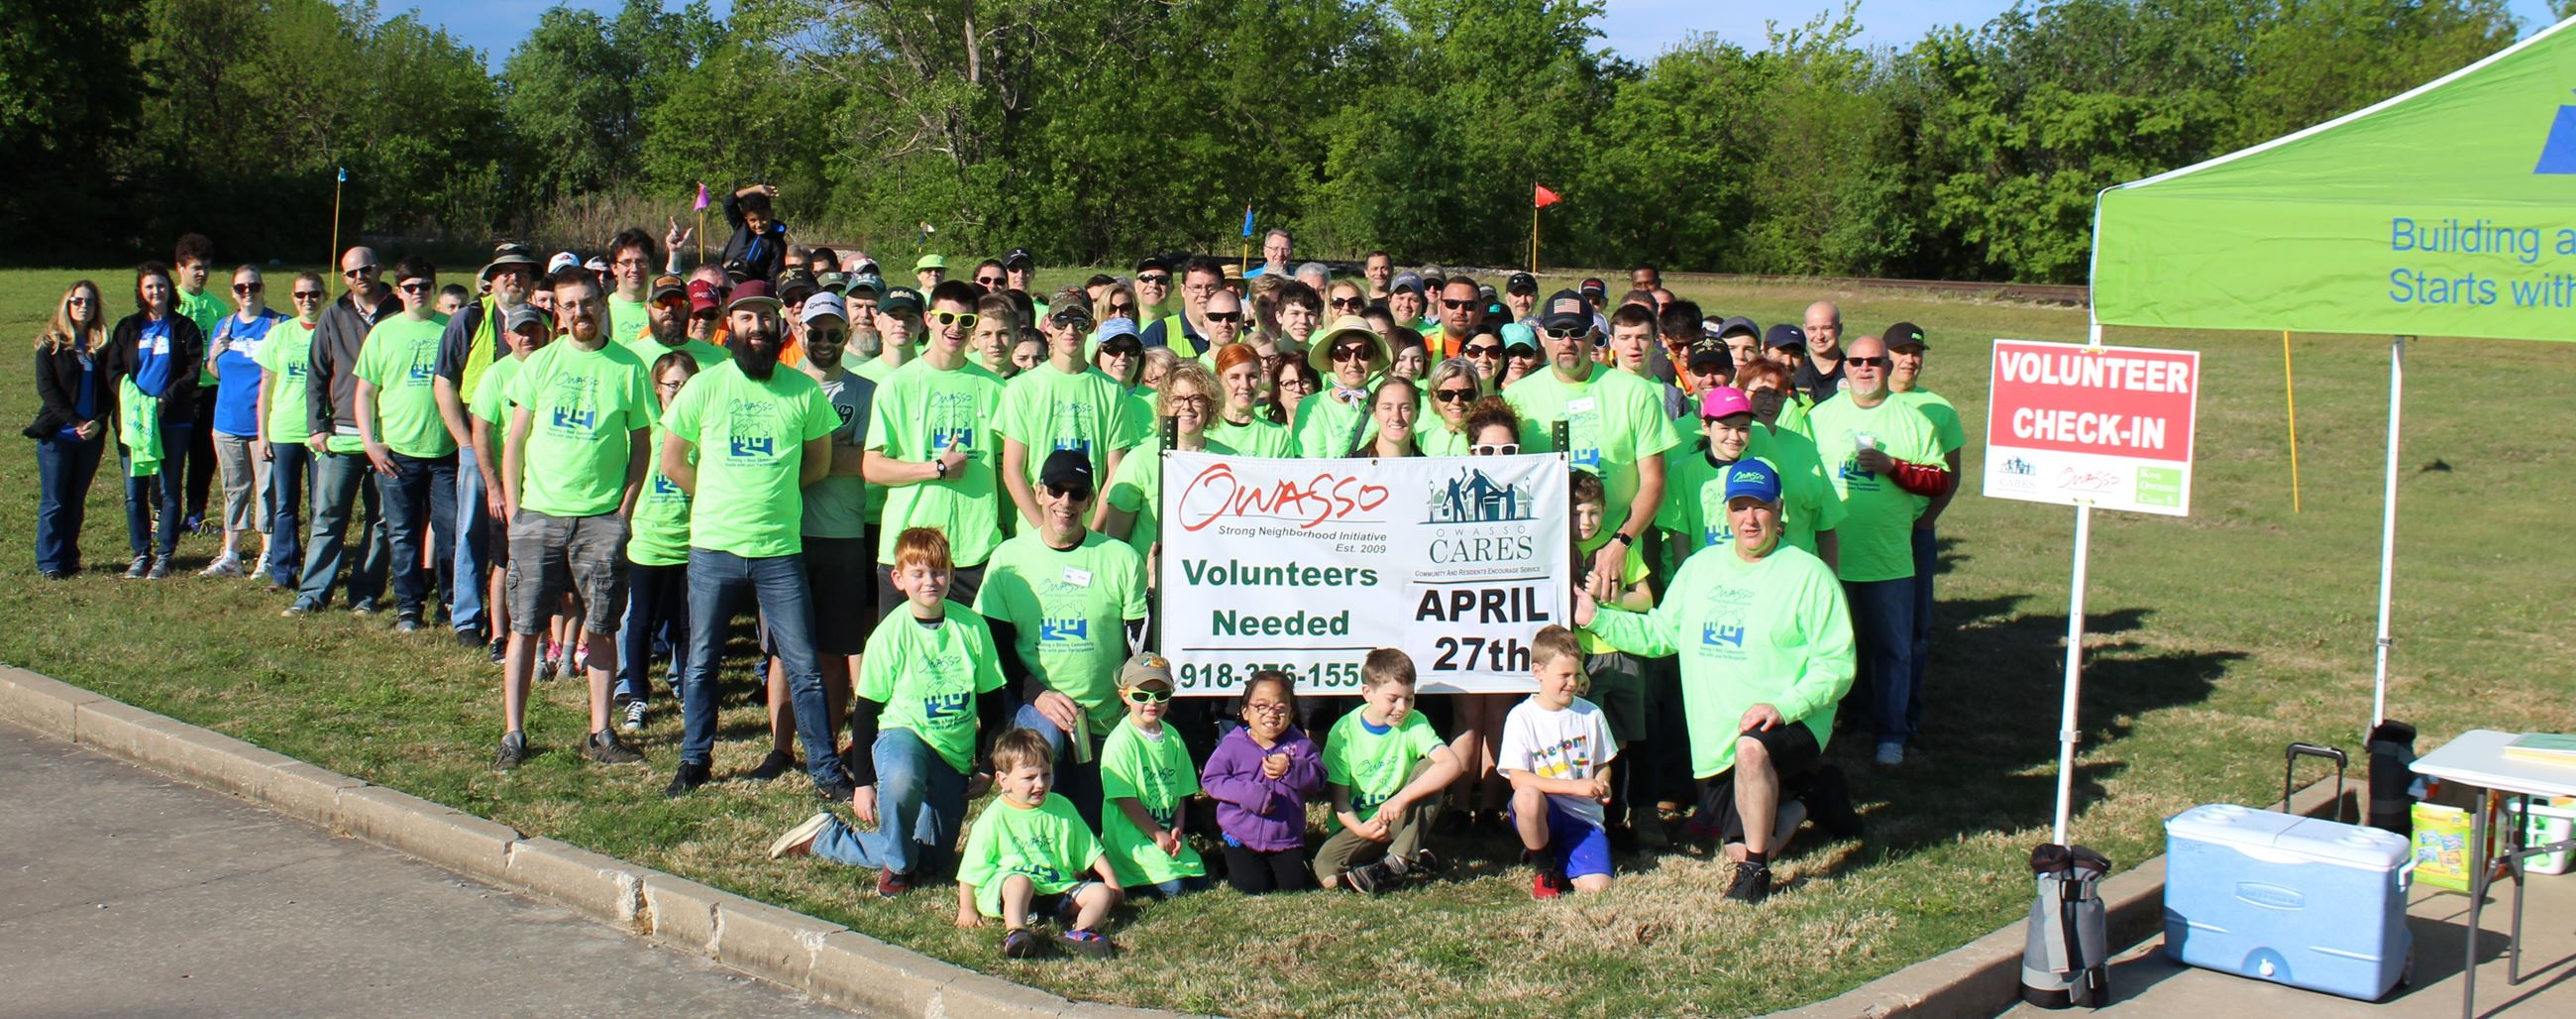 Volunteers gather for Owasso CARES Day of Service Spring 2019